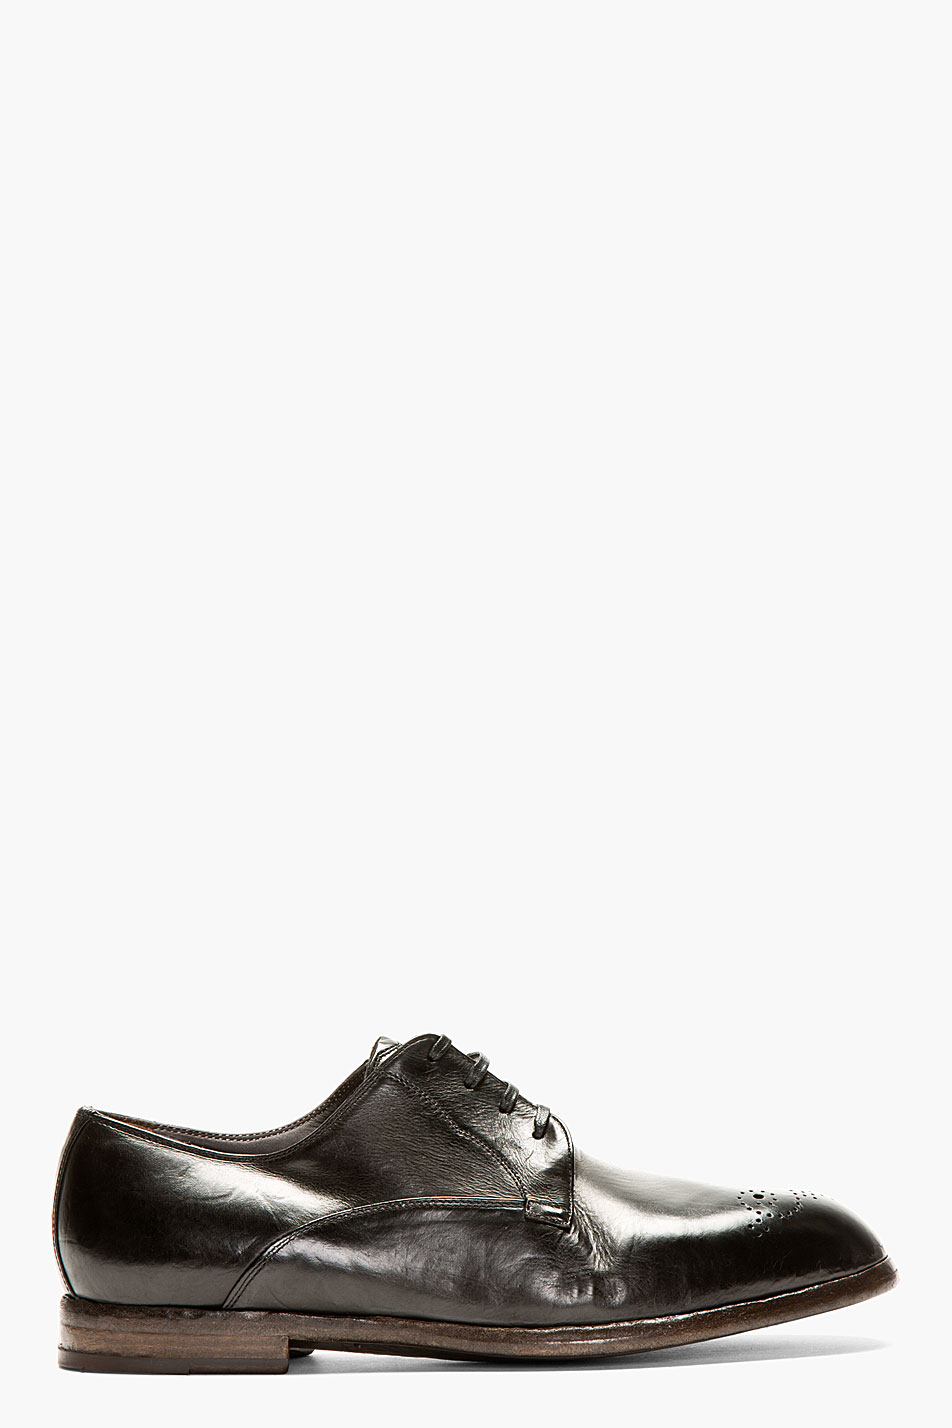 Dolce and gabbana black leather derby shoes